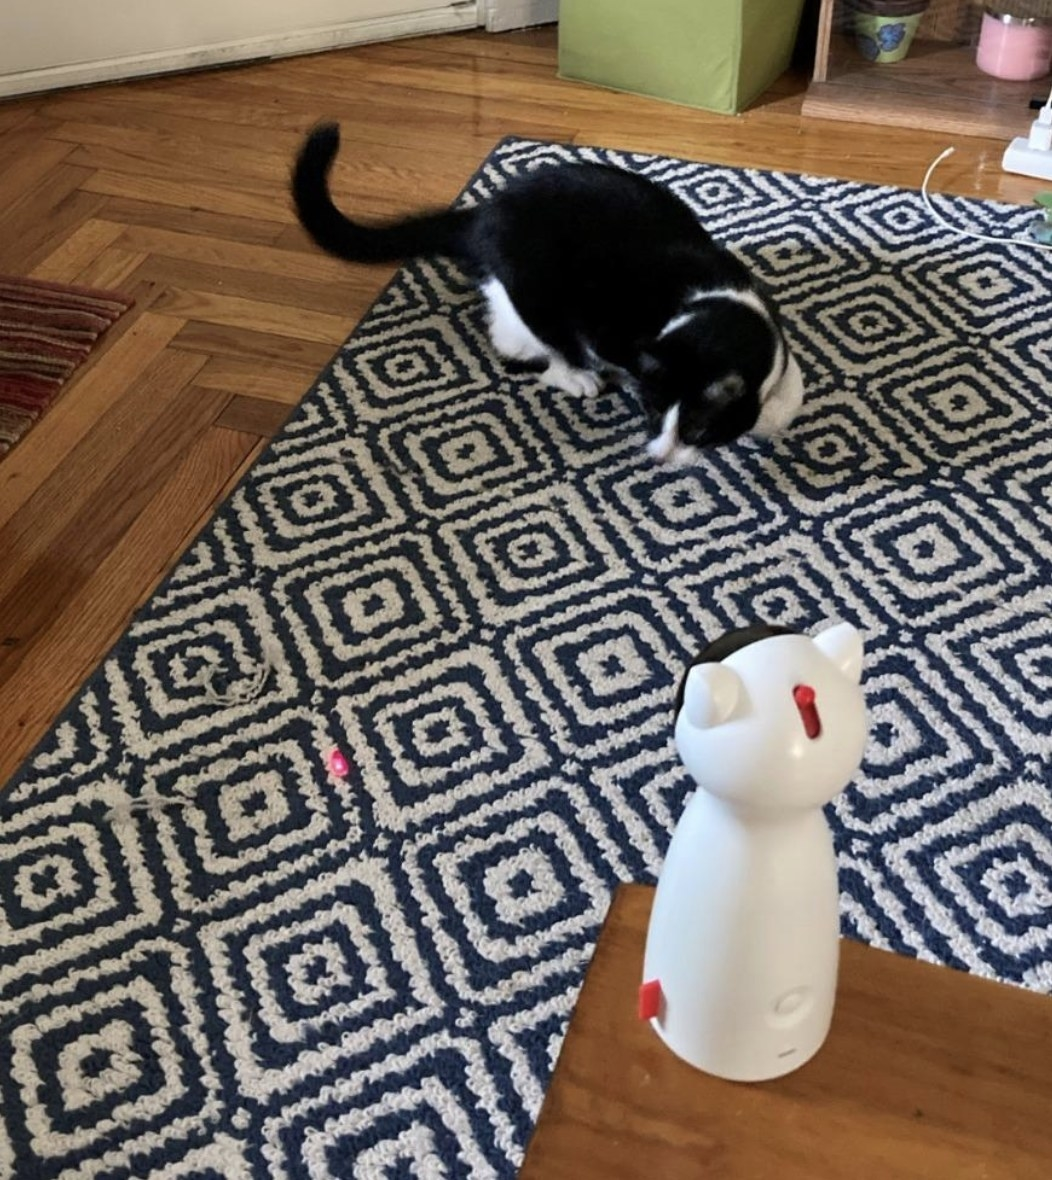 a black and white cat chasing a red laser from a cat-shaped automatic laser pointer